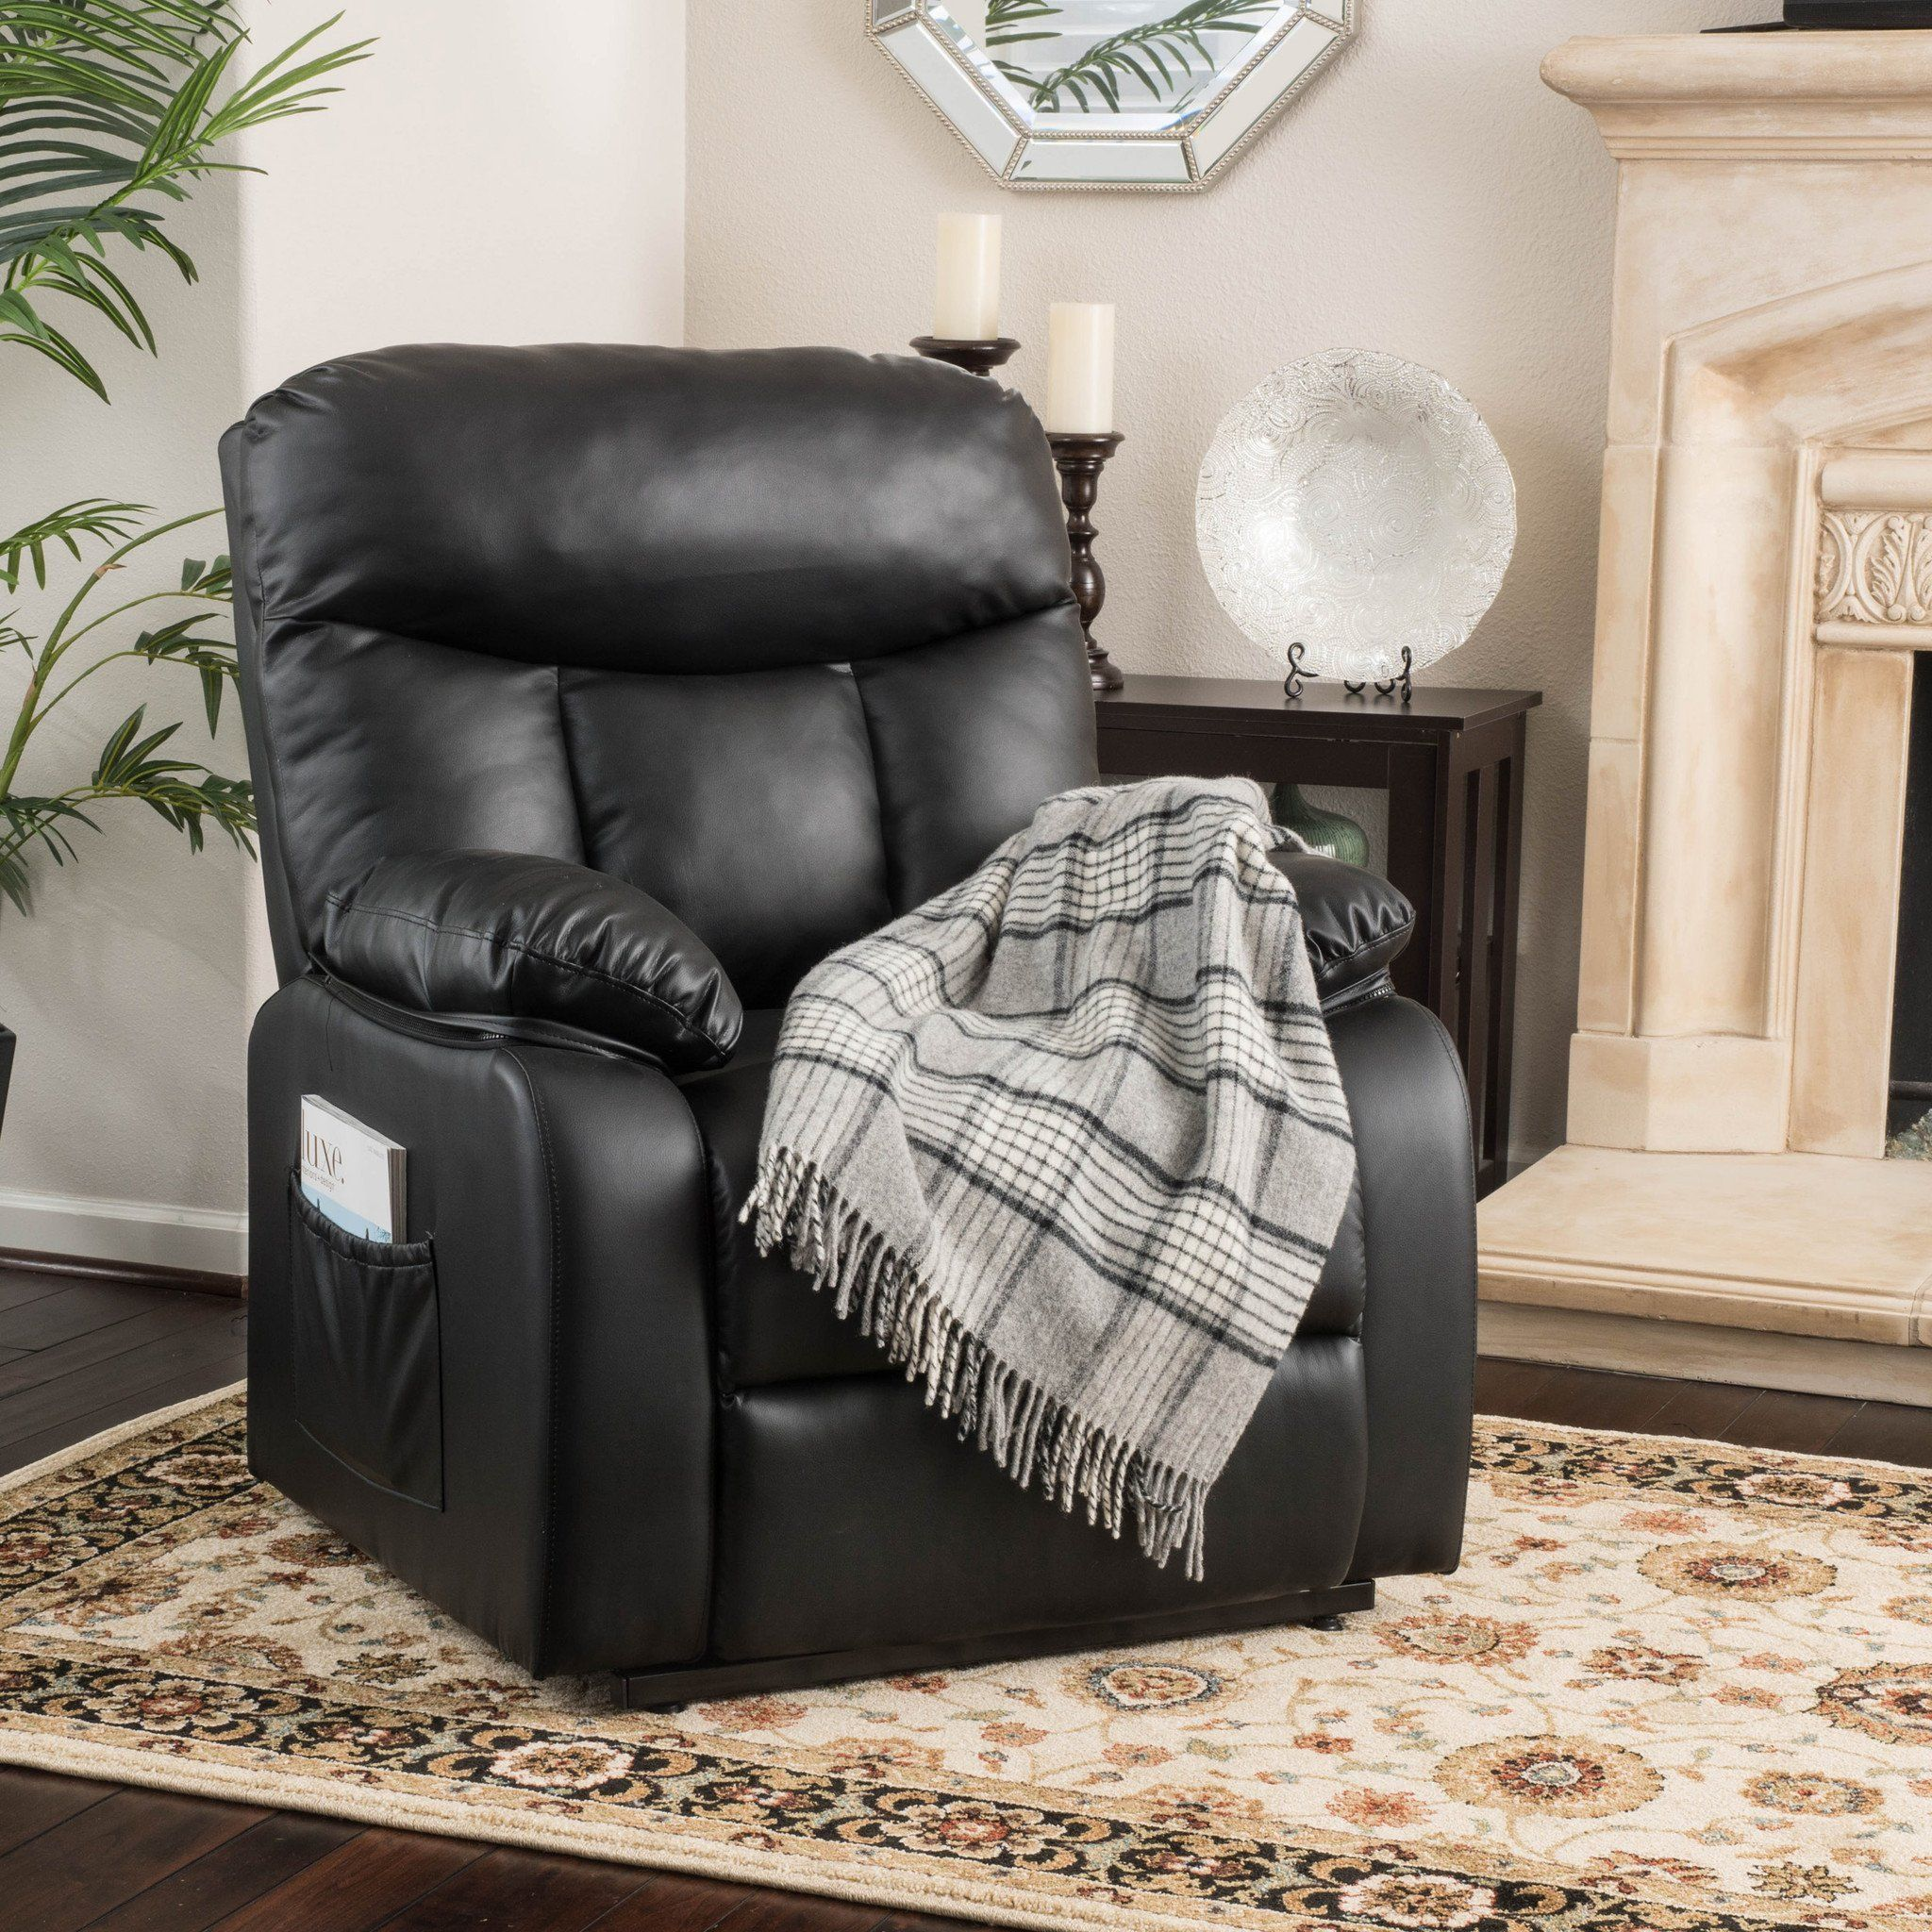 Ordinaire Edenton Leather Lift Up Recliner Chair